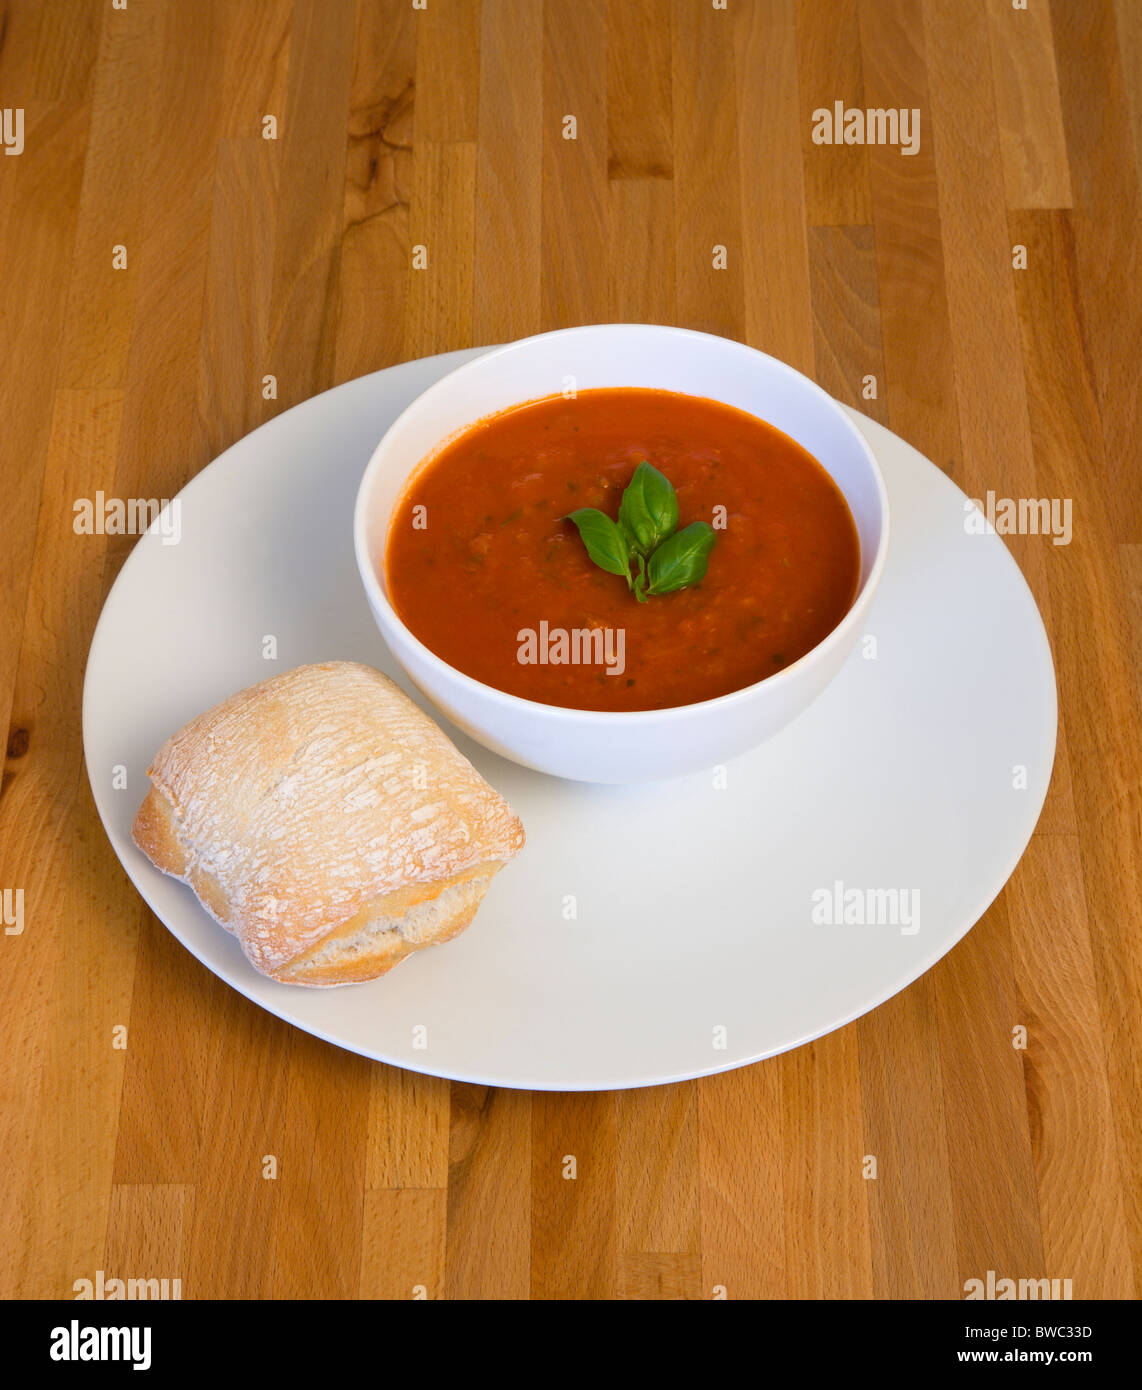 Food Cooked Soup Bowl of tomato and basil soup on a plate with a rustic bread roll on a wooden table surface. & Food Cooked Soup Bowl of tomato and basil soup on a plate with a ...